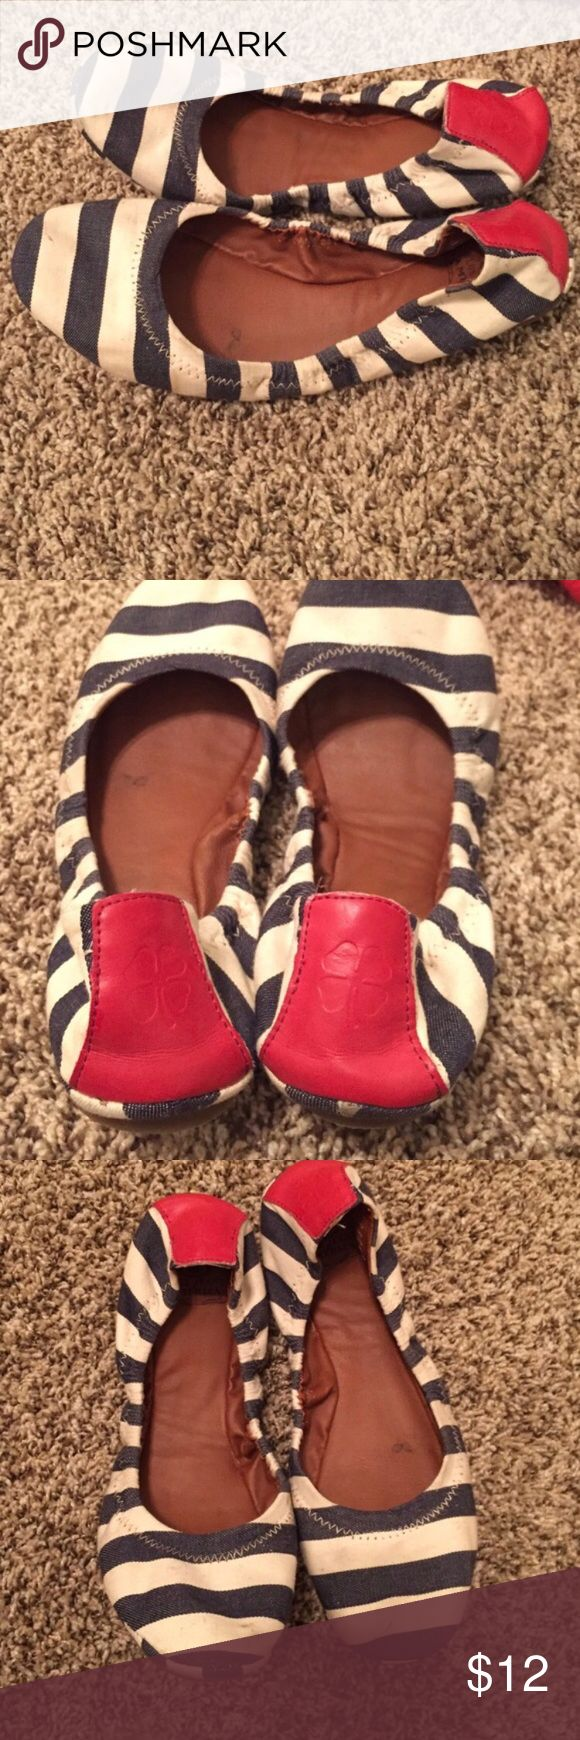 Lucky Brand Flats Luck Brand Flats, good shape lots of life left Lucky Brand Shoes Flats & Loafers